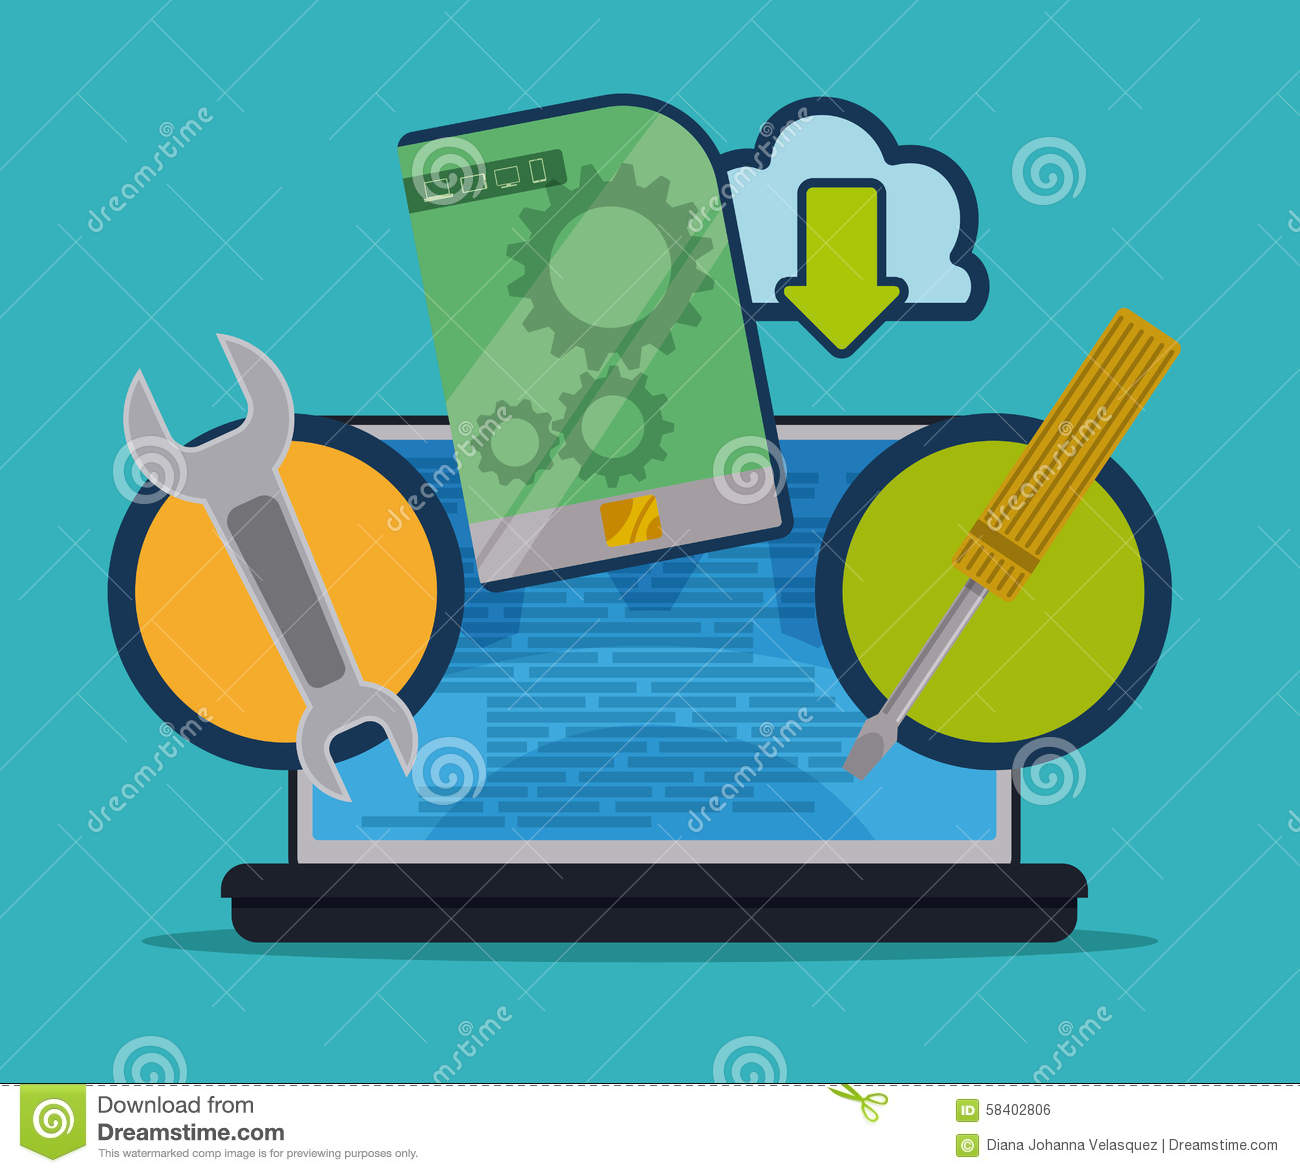 Software design Vector image software